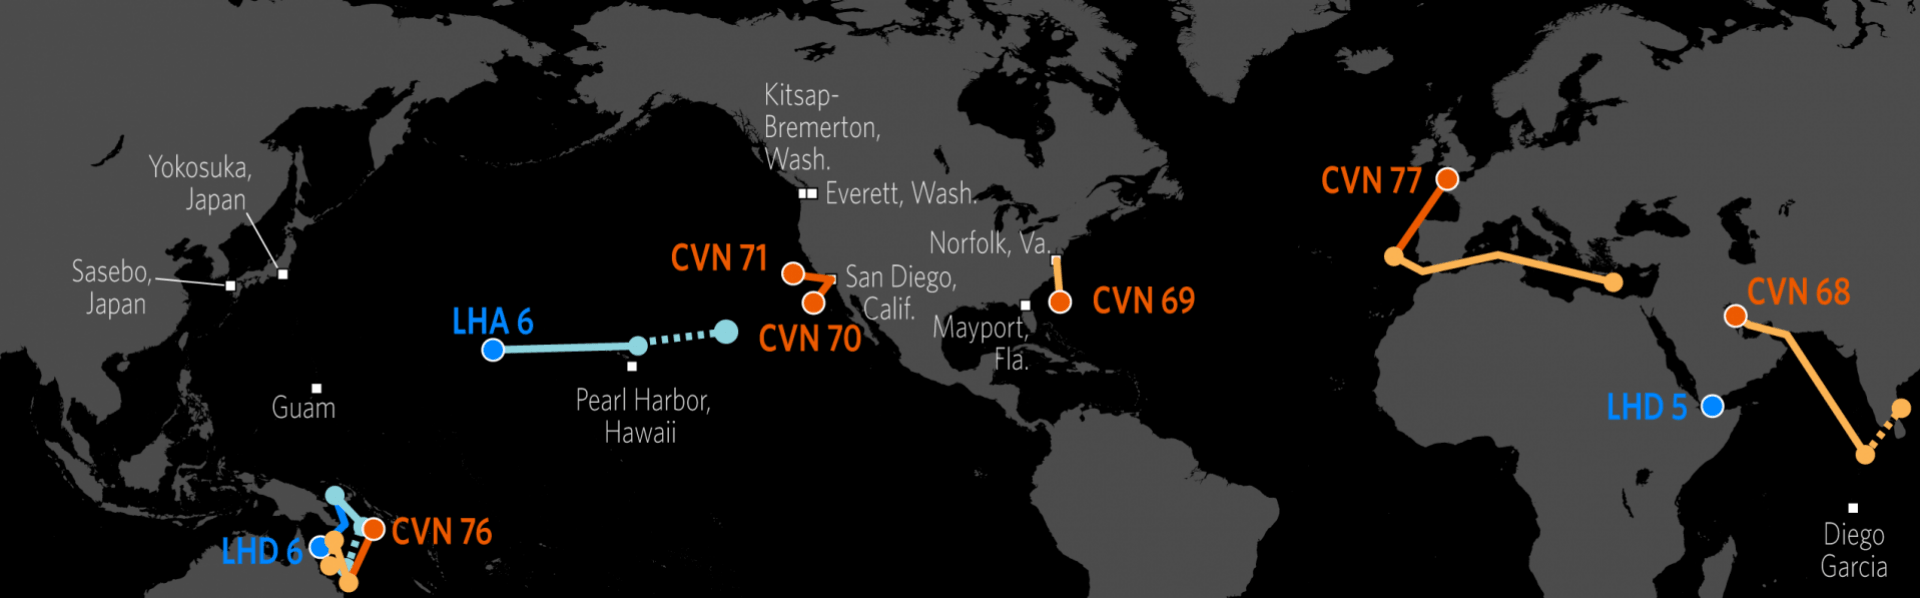 US Naval Update Map Aug Stratfor Worldview - Us navy ships aircraft carriers movement stratfor maps